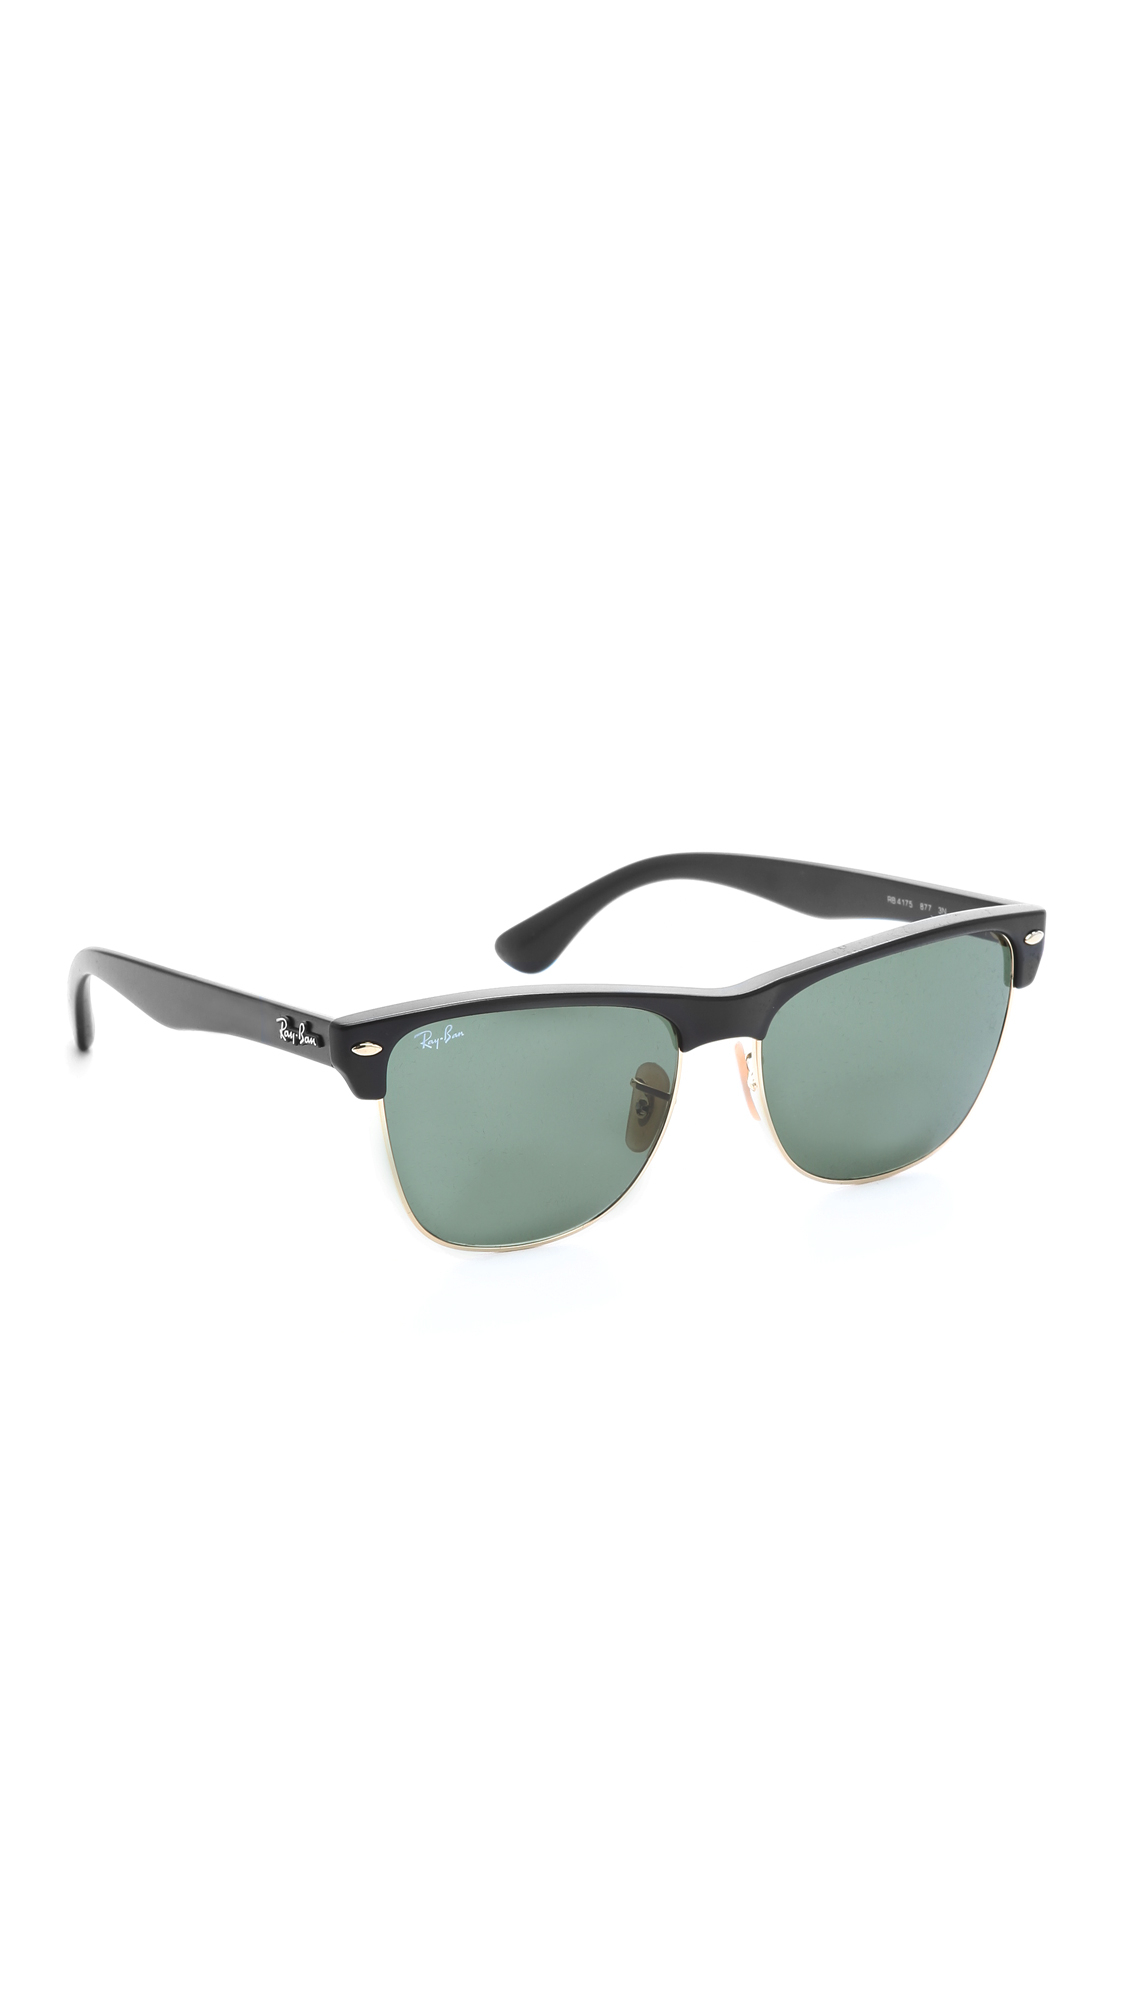 ray ban oversized clubmaster sunglasses black crystal green in black black crystal green lyst. Black Bedroom Furniture Sets. Home Design Ideas